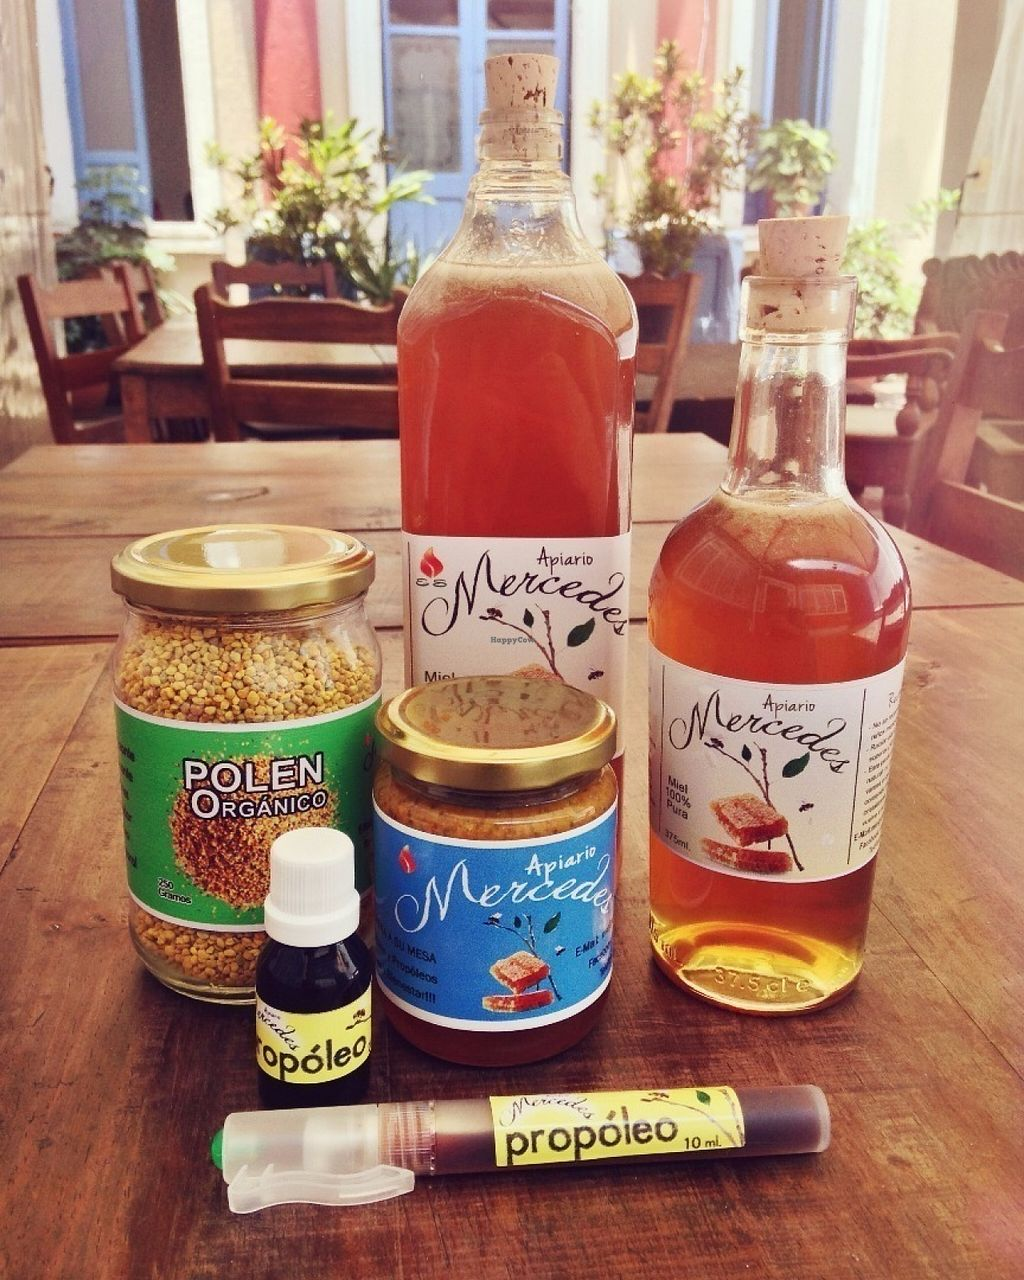 """Photo of La Casa de Cervantes  by <a href=""""/members/profile/Olenka"""">Olenka</a> <br/>Fair trade bee products in our fair trade store! <br/> July 12, 2016  - <a href='/contact/abuse/image/73229/159481'>Report</a>"""